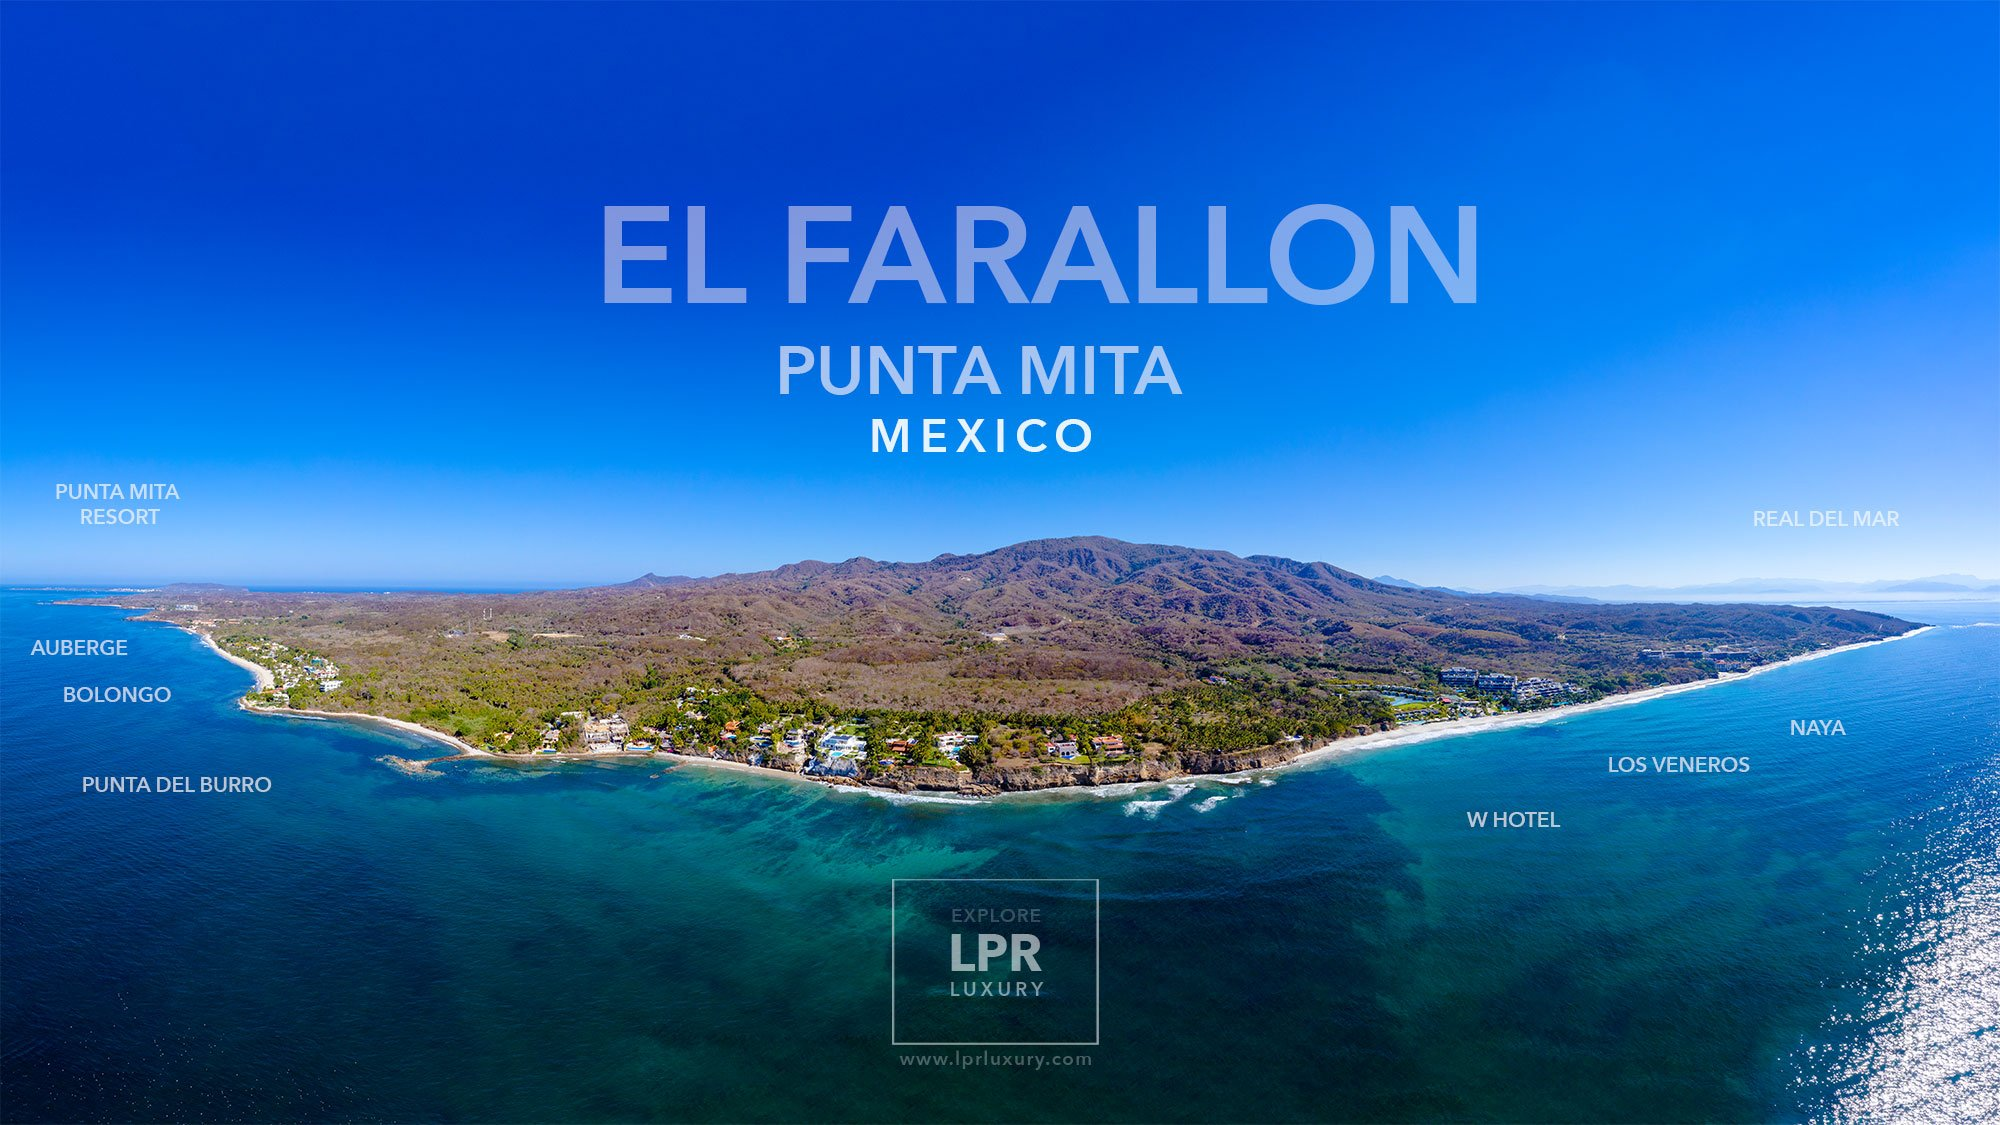 El Farallon - Luxury villas for sale and rent - Punta de Mita, Puerto Vallarta, Riviera Nayarit, Mexico